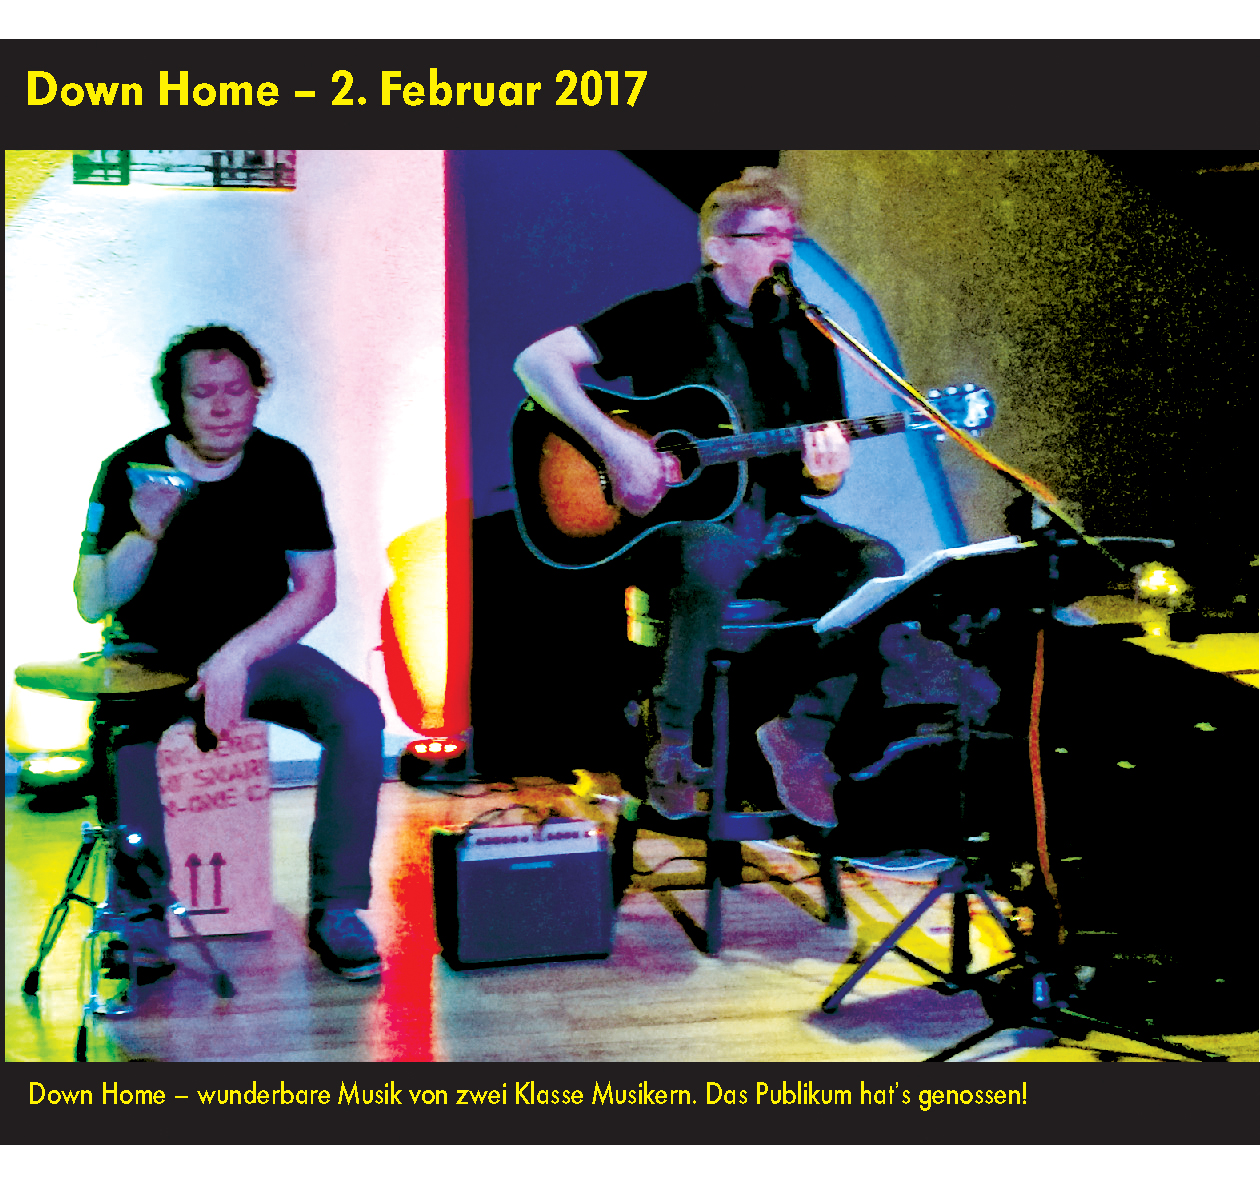 Down Home 2.2.2017